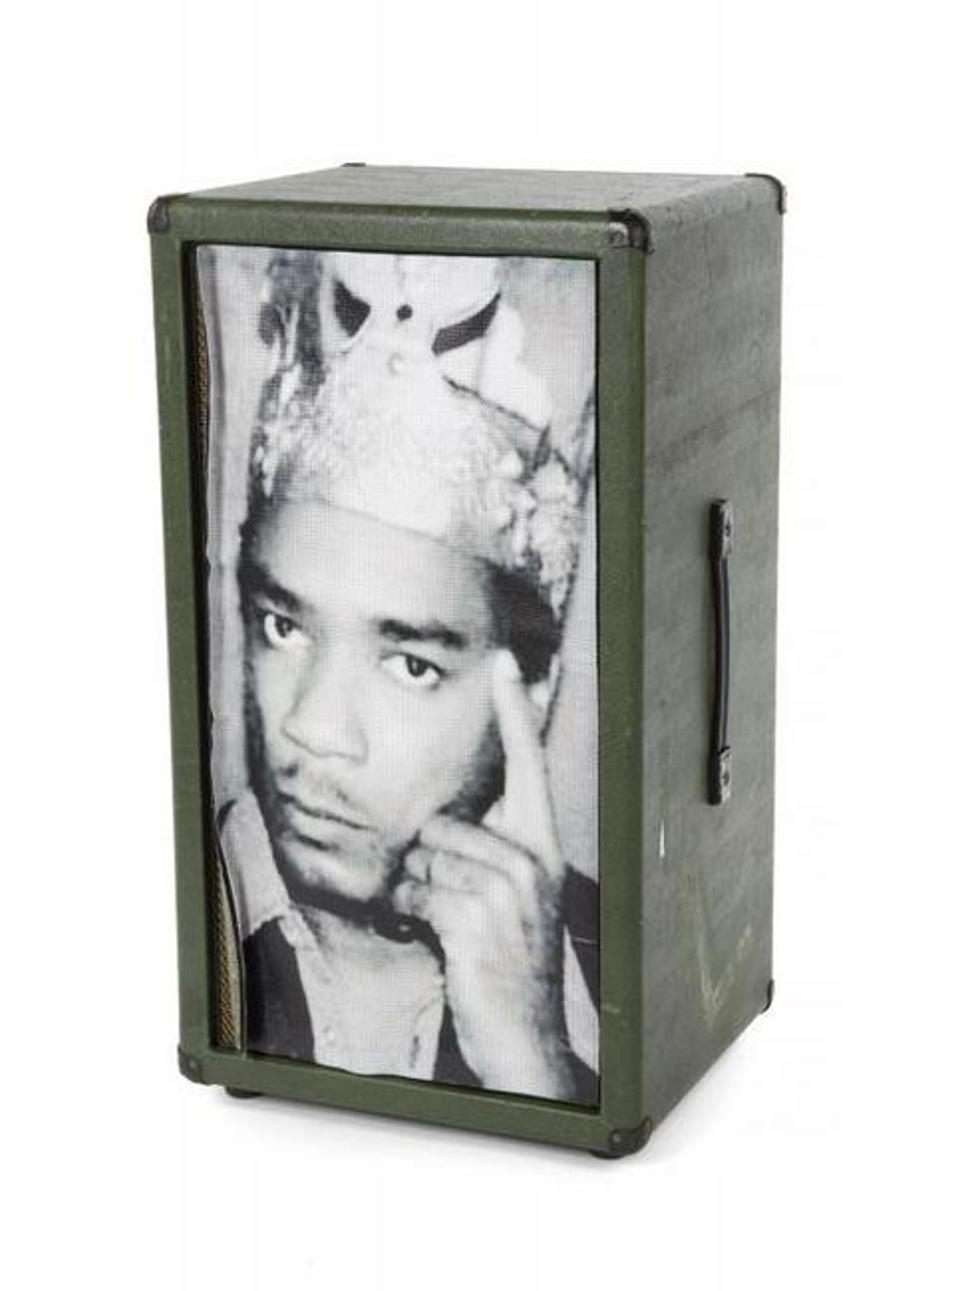 Walter Becker's MESA/Boogie speaker cabinet, with photo of King Tubby on front